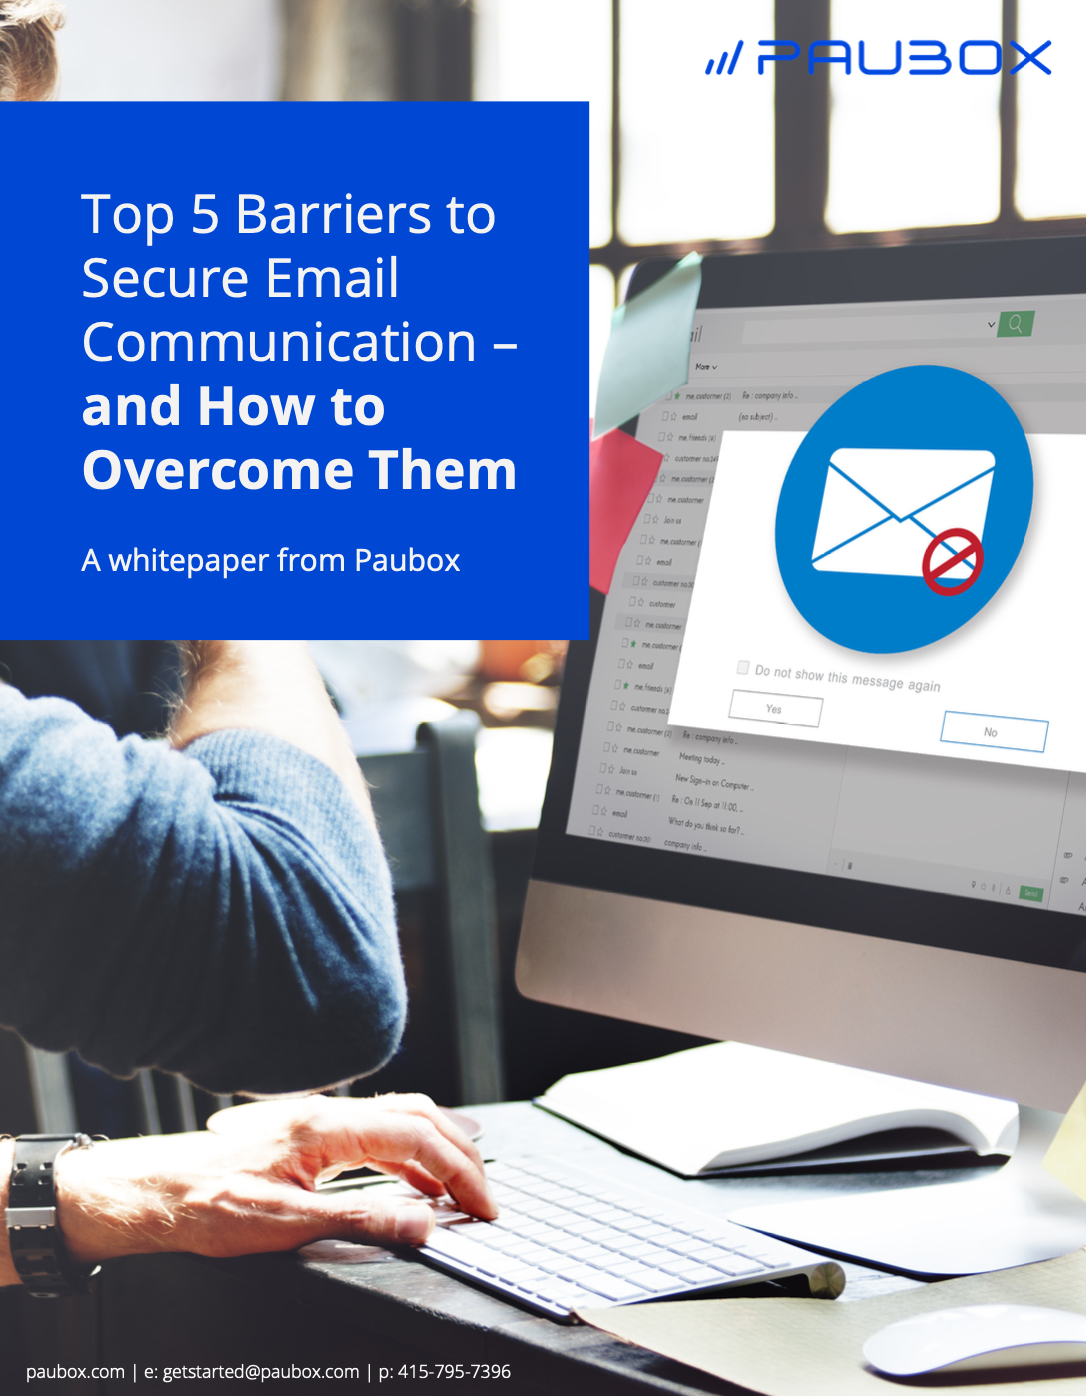 Barriers to Secure Email Communication Whitepaper